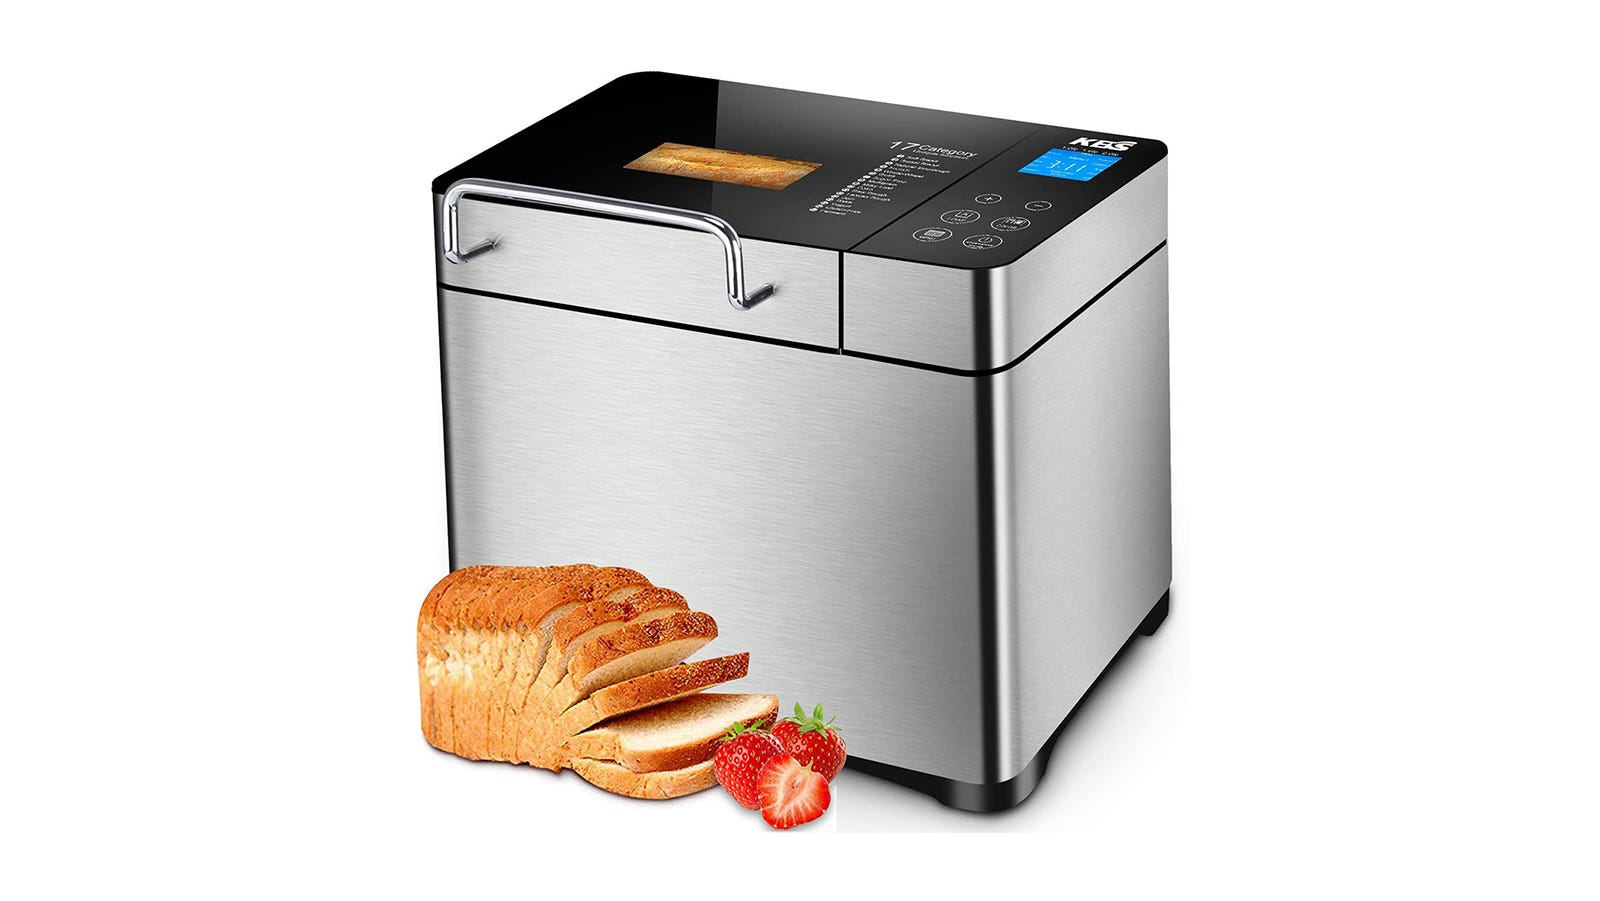 Silver rectangular bread machine with a loaf of sliced bread